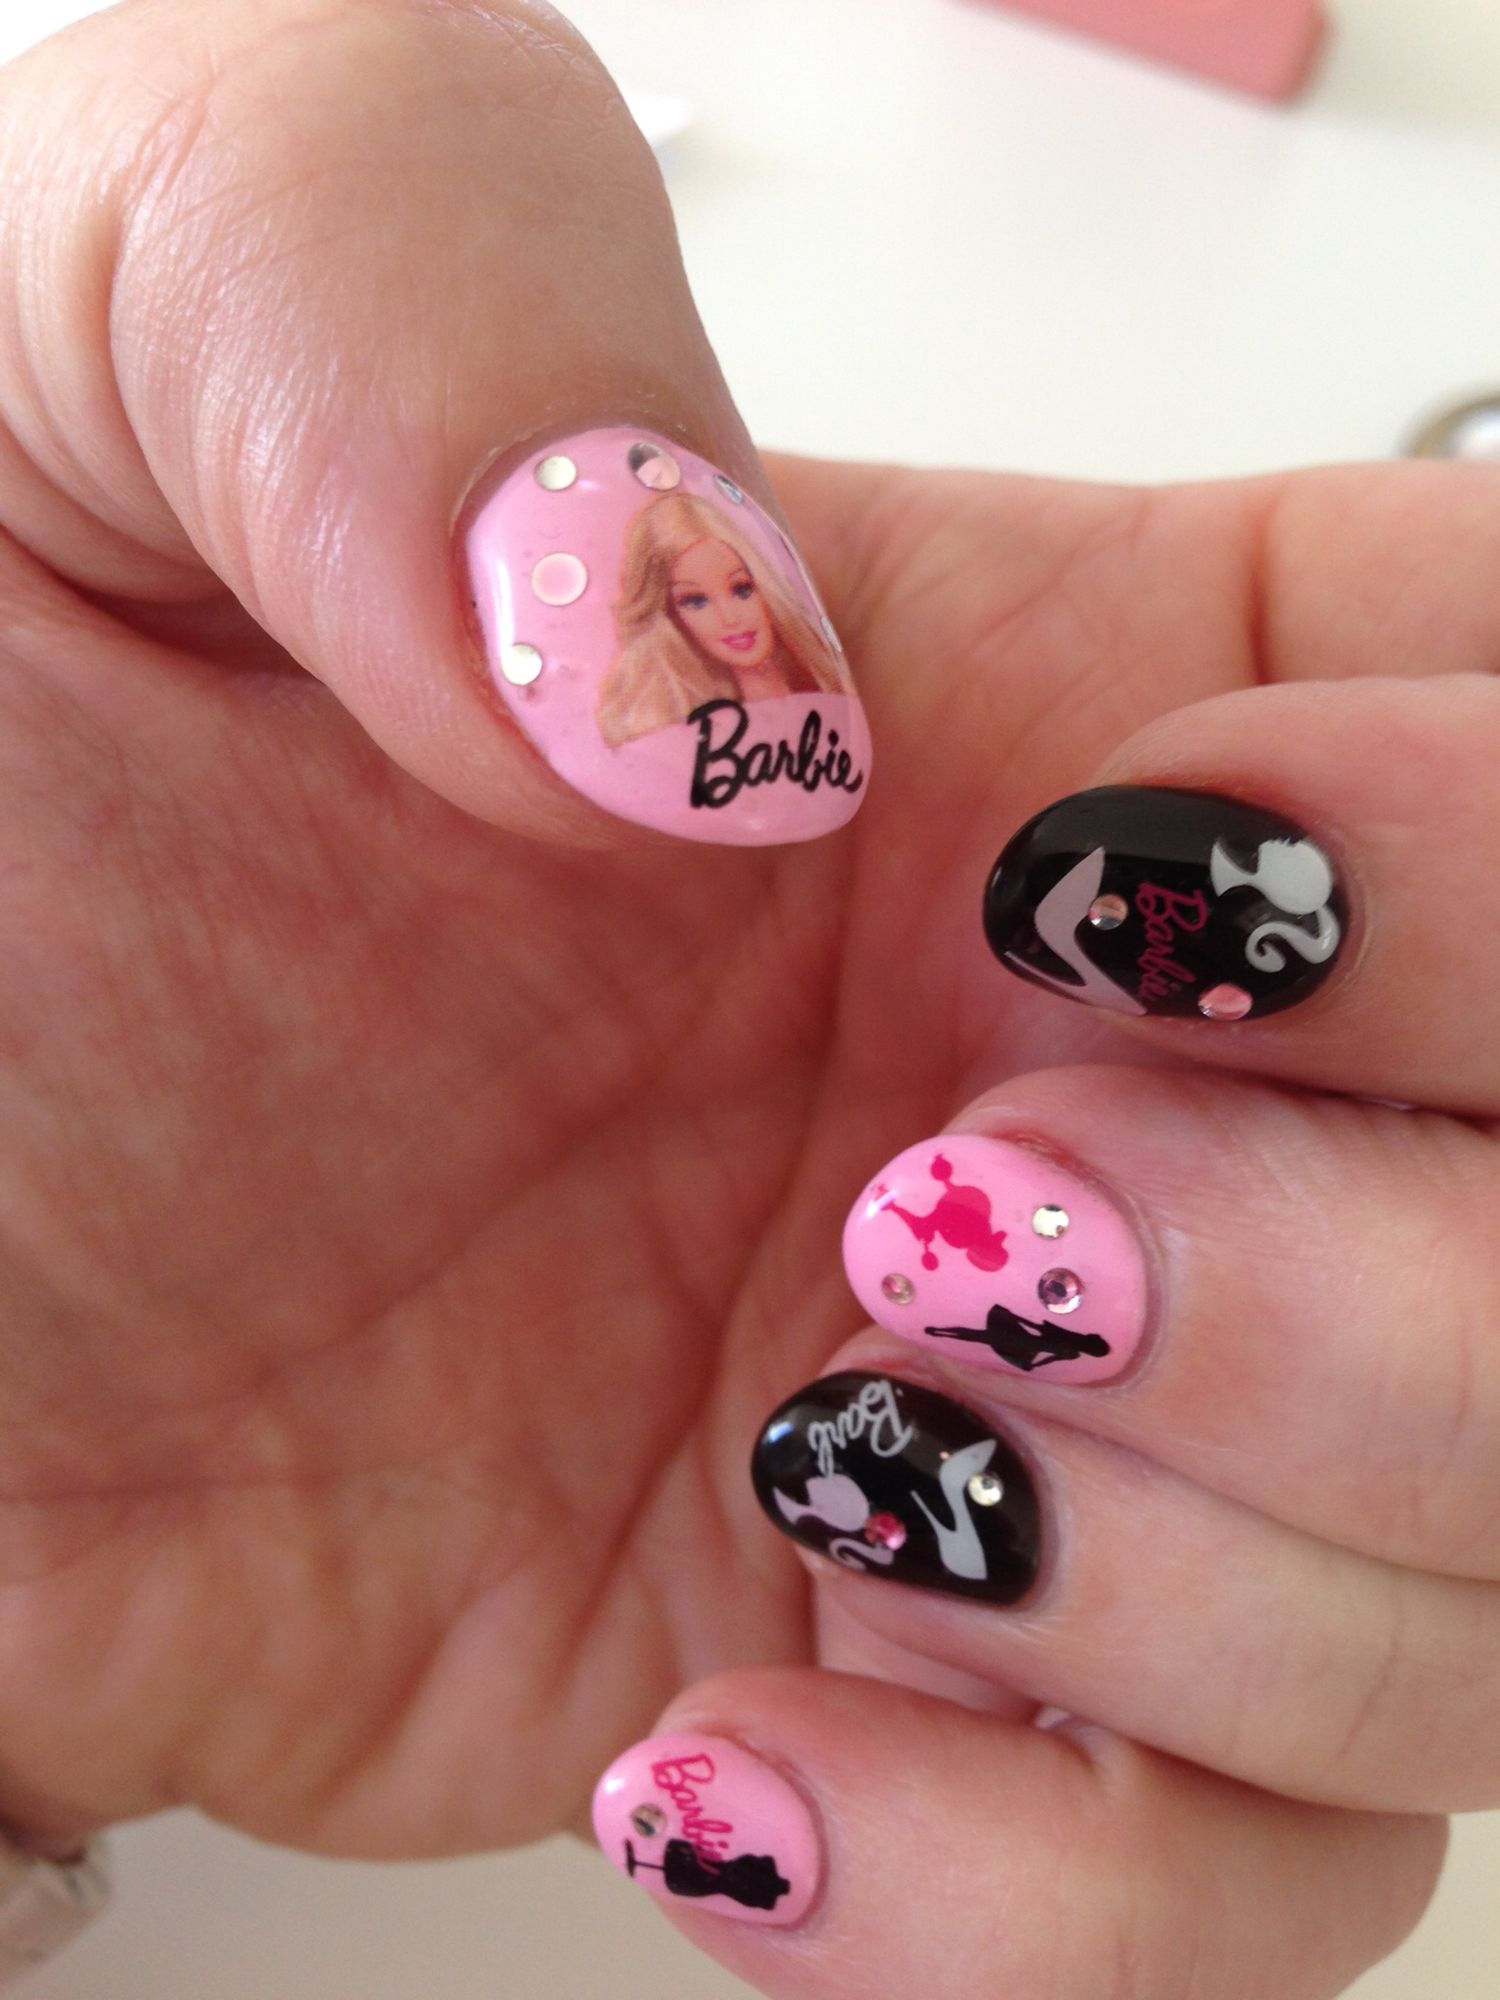 Barbie Nails Nail Designs On My Nails Pinterest